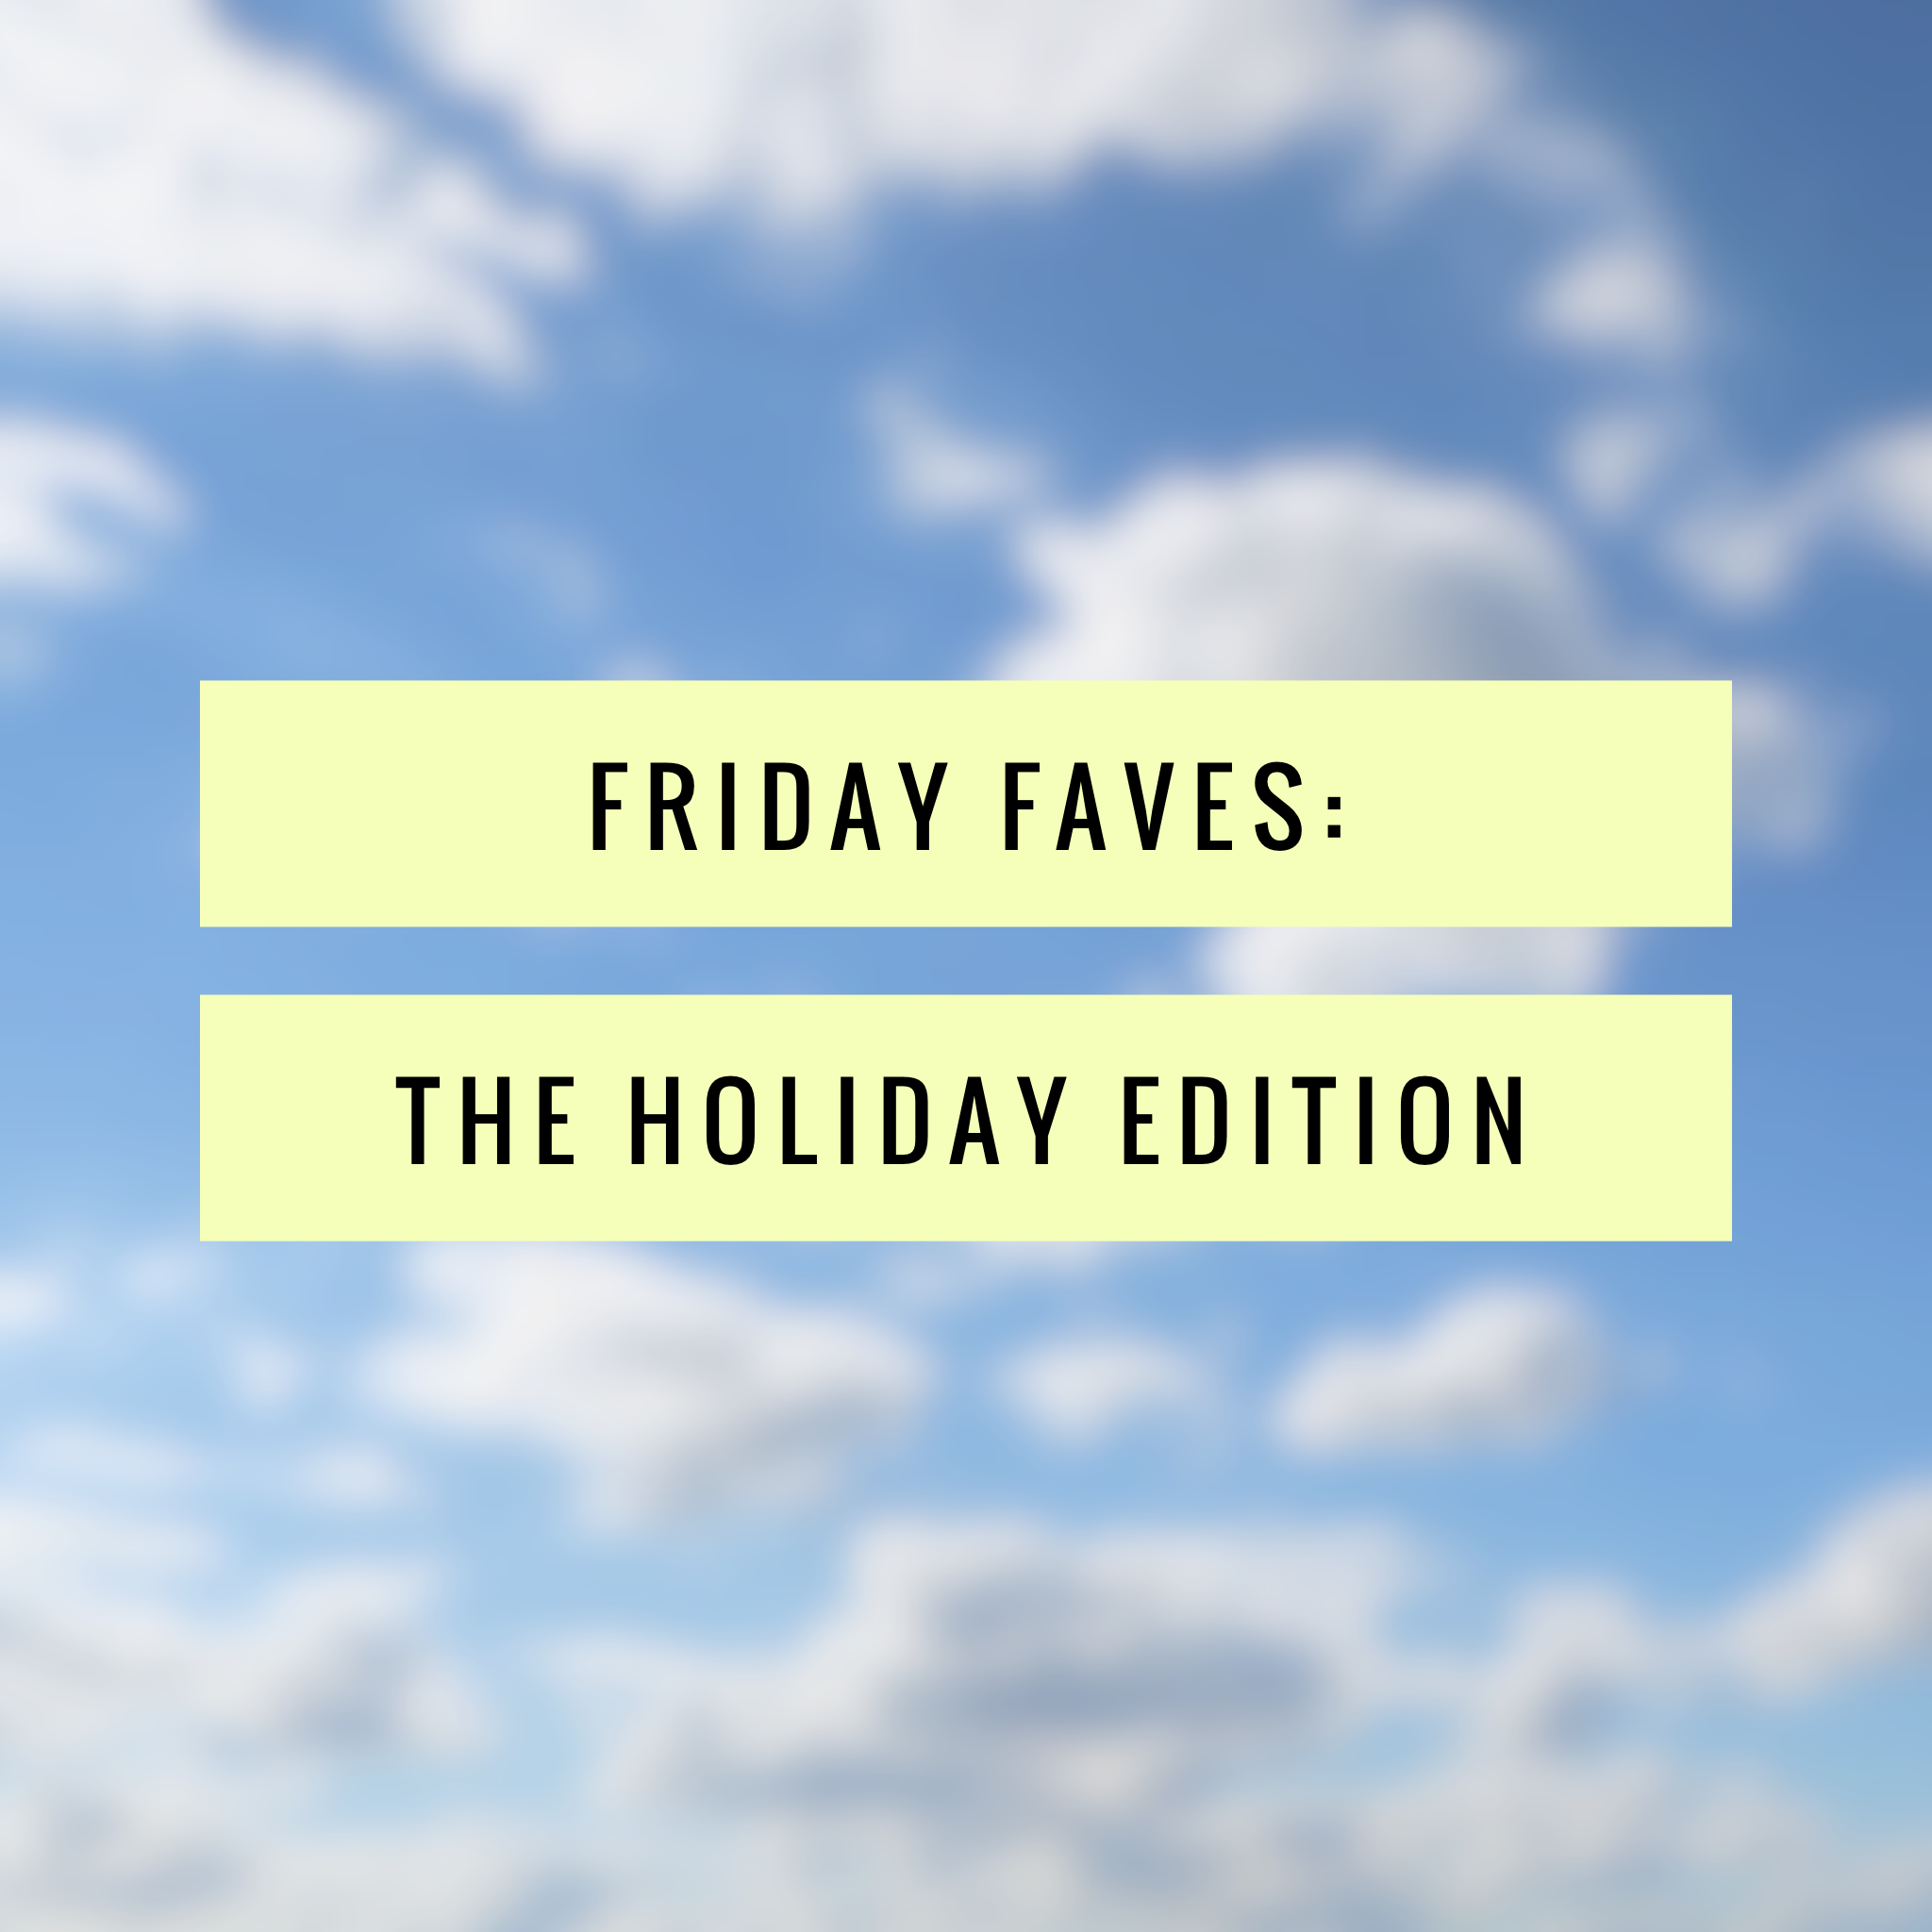 Friday Faves: the holiday edition